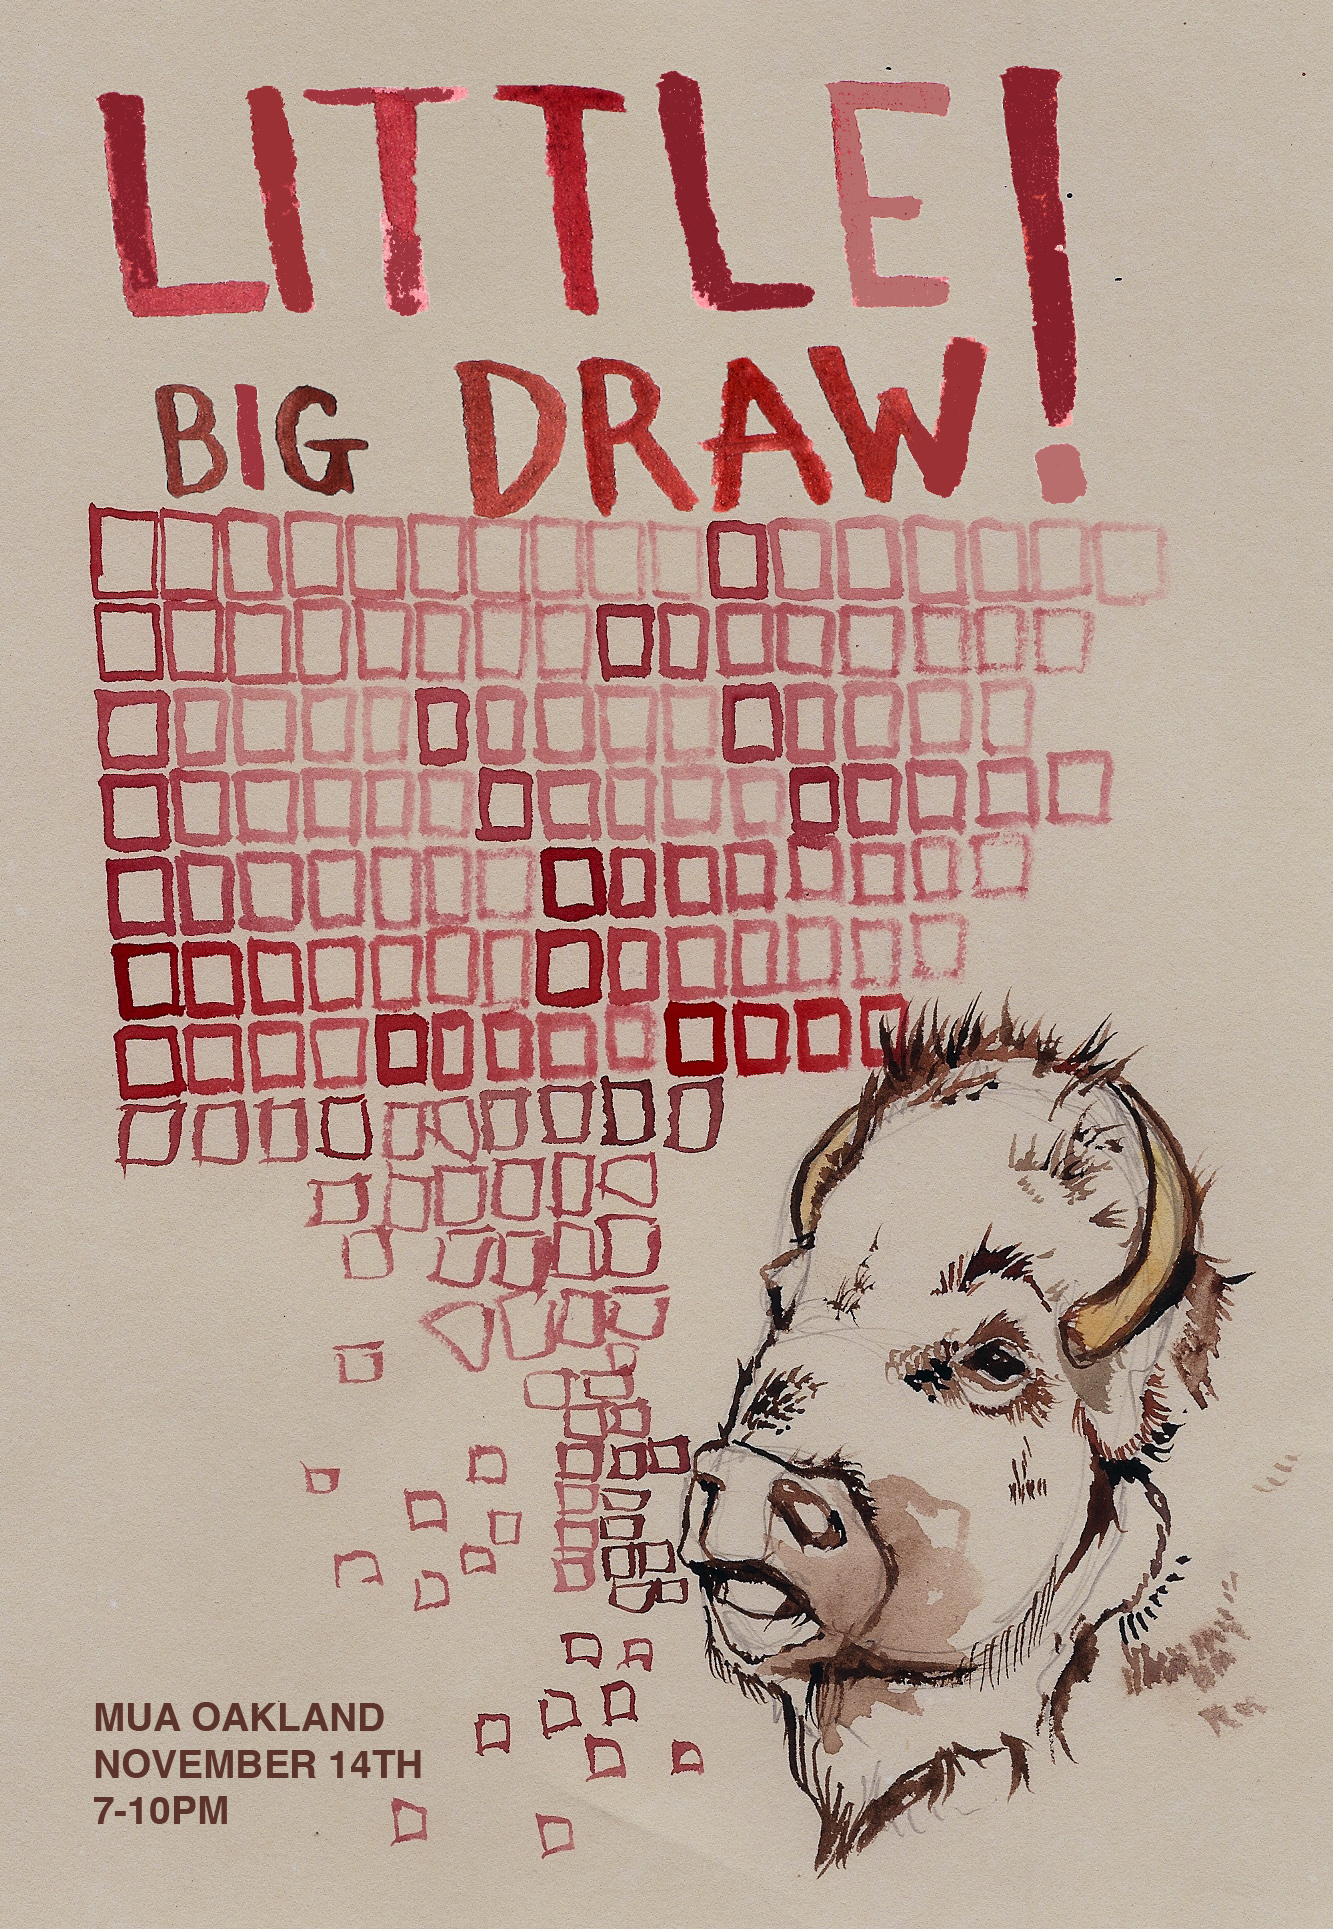 Little Big Draw, Live Drawing Event! Wednesday November 14th, 2012.